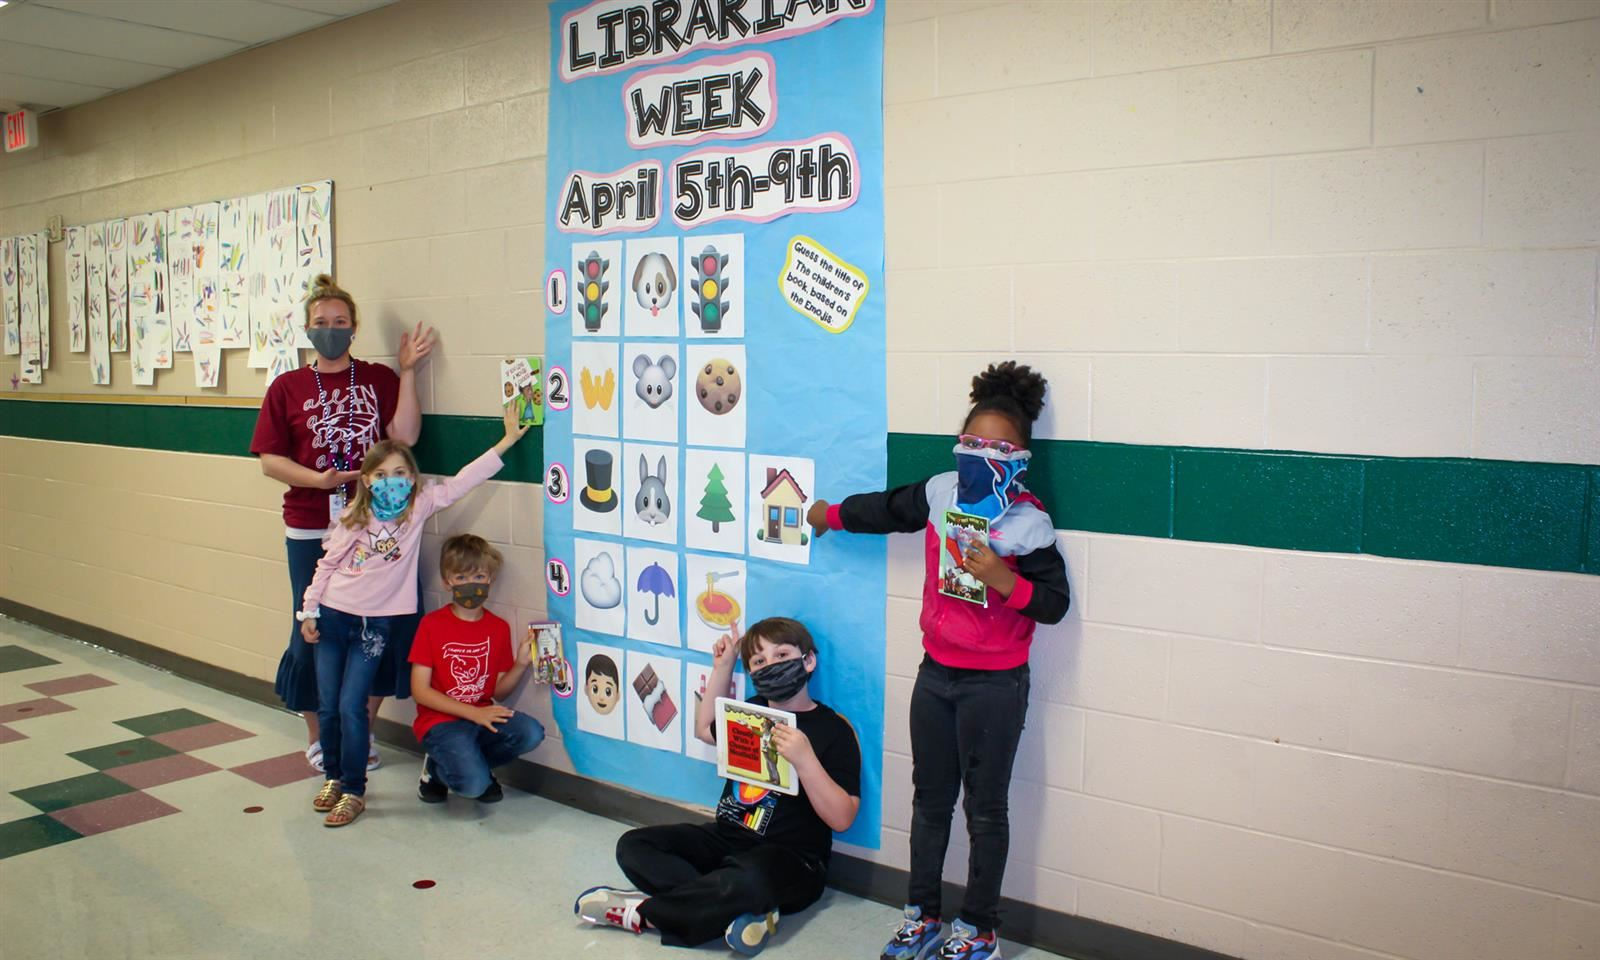 Students stand against wall with Library Week sign